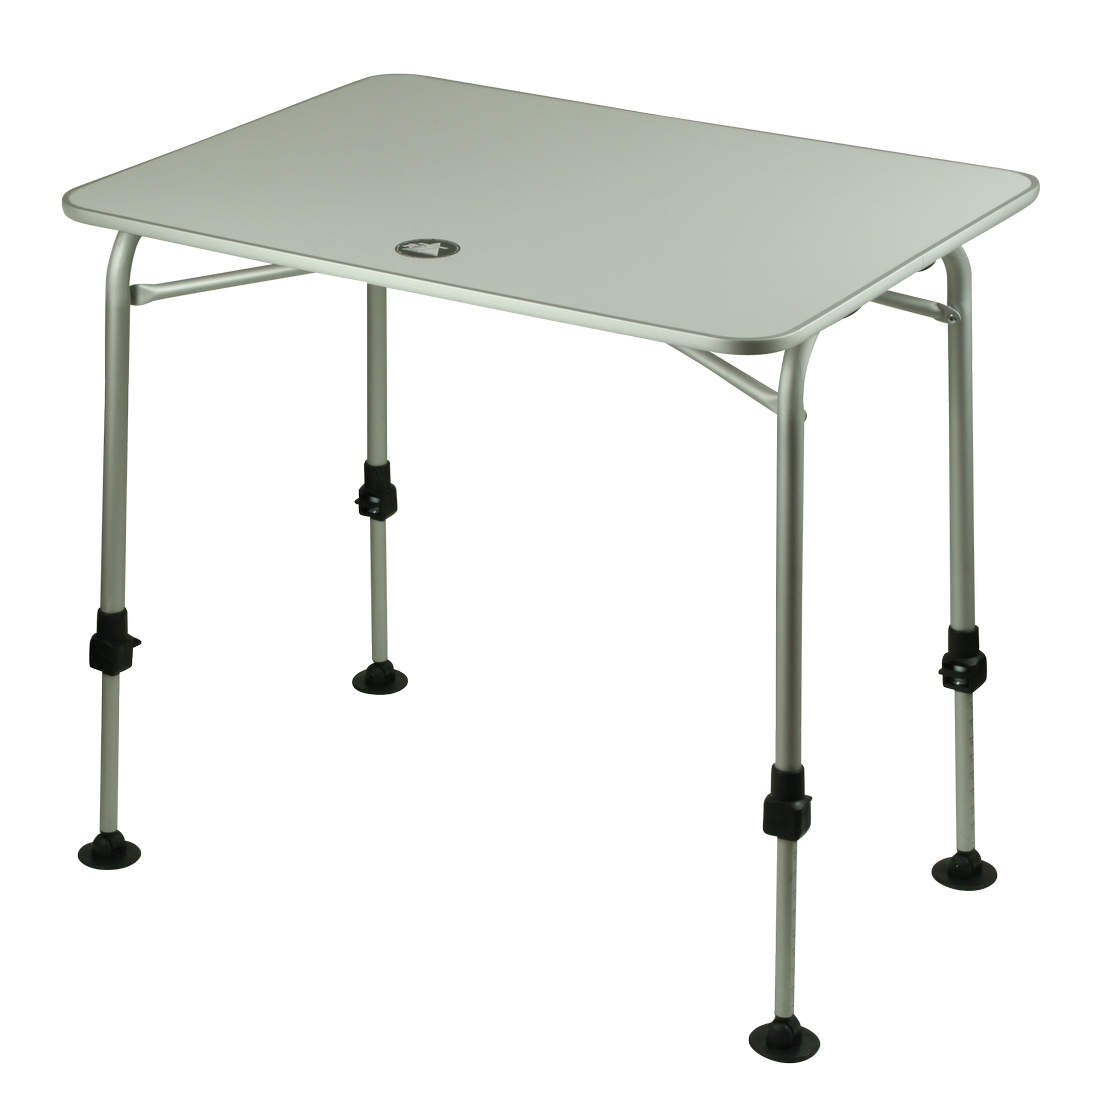 10t flaprack single camping foldable table 80x60 cm stable aluminium table top telescopic - Table with telescoping legs ...